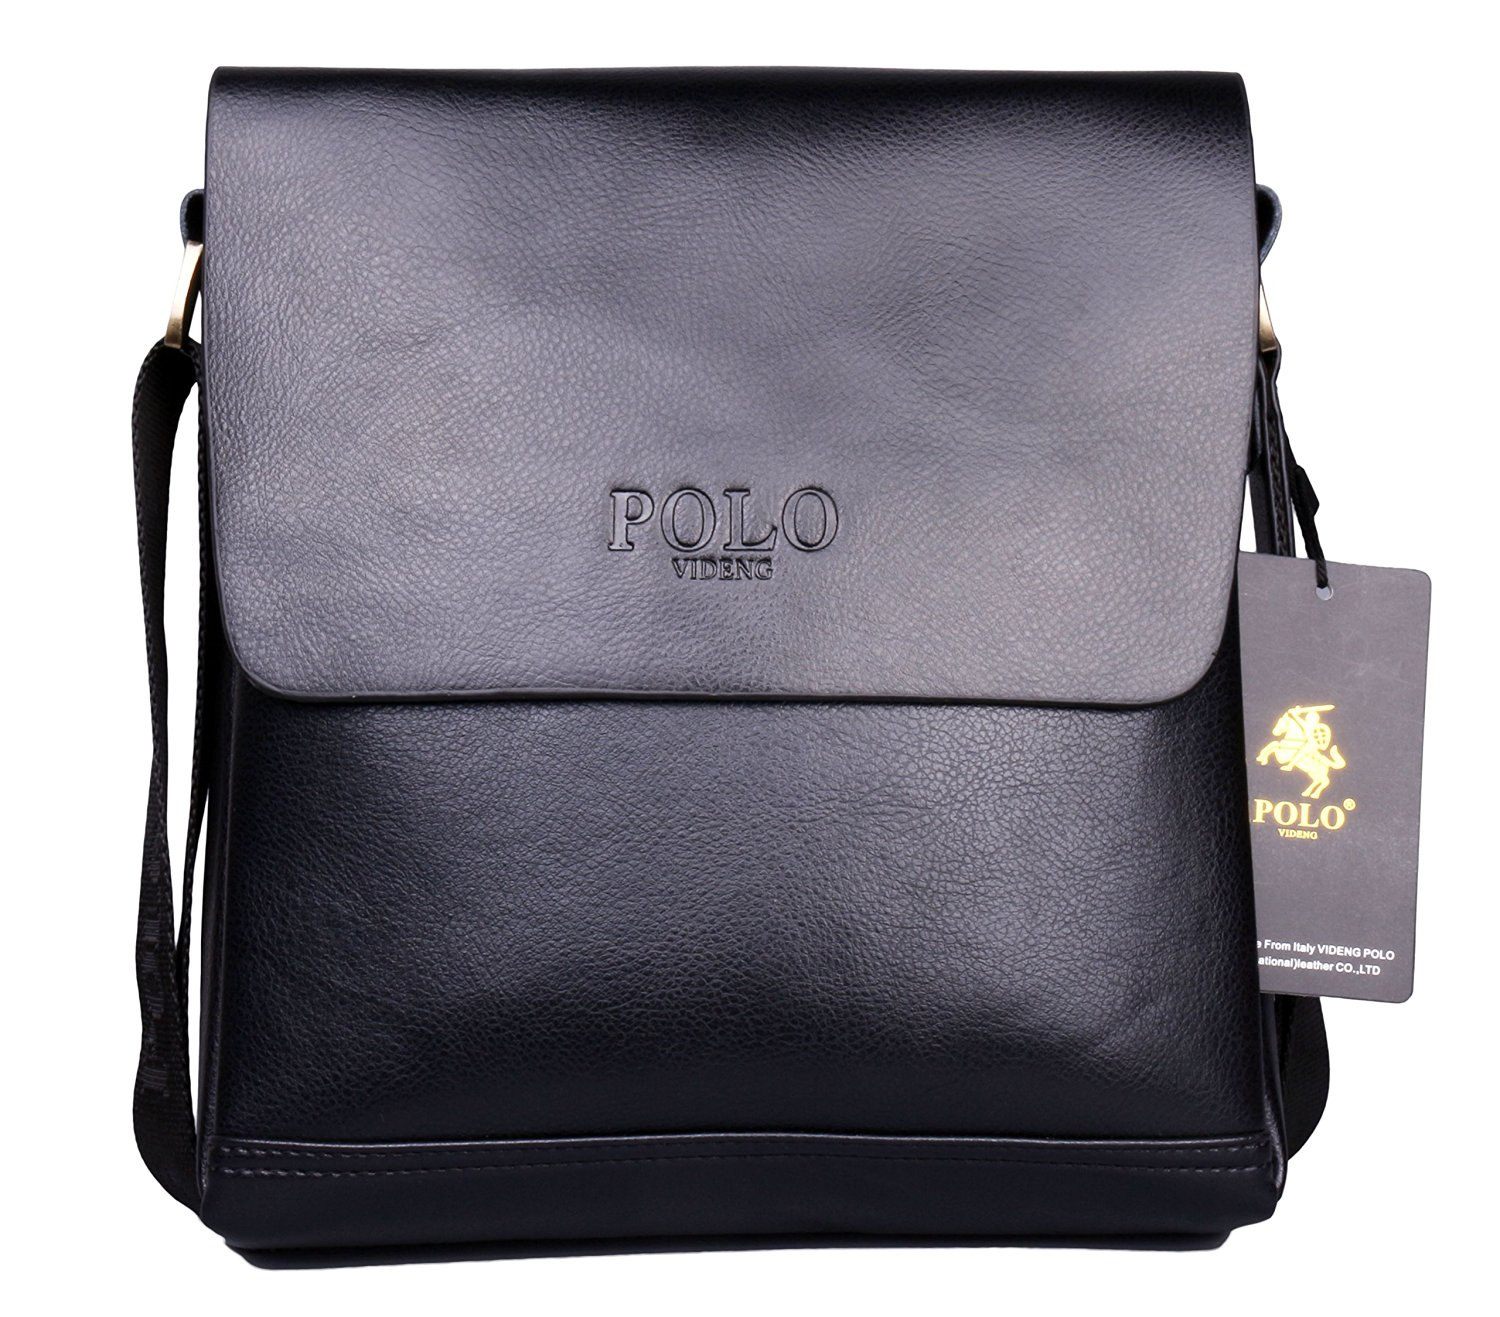 a894392c08ef VIDENG POLO® PL348 Hotest Top Luxury Genuine Leather Men s Briefcase  Shoulder Messenger Business Bag From